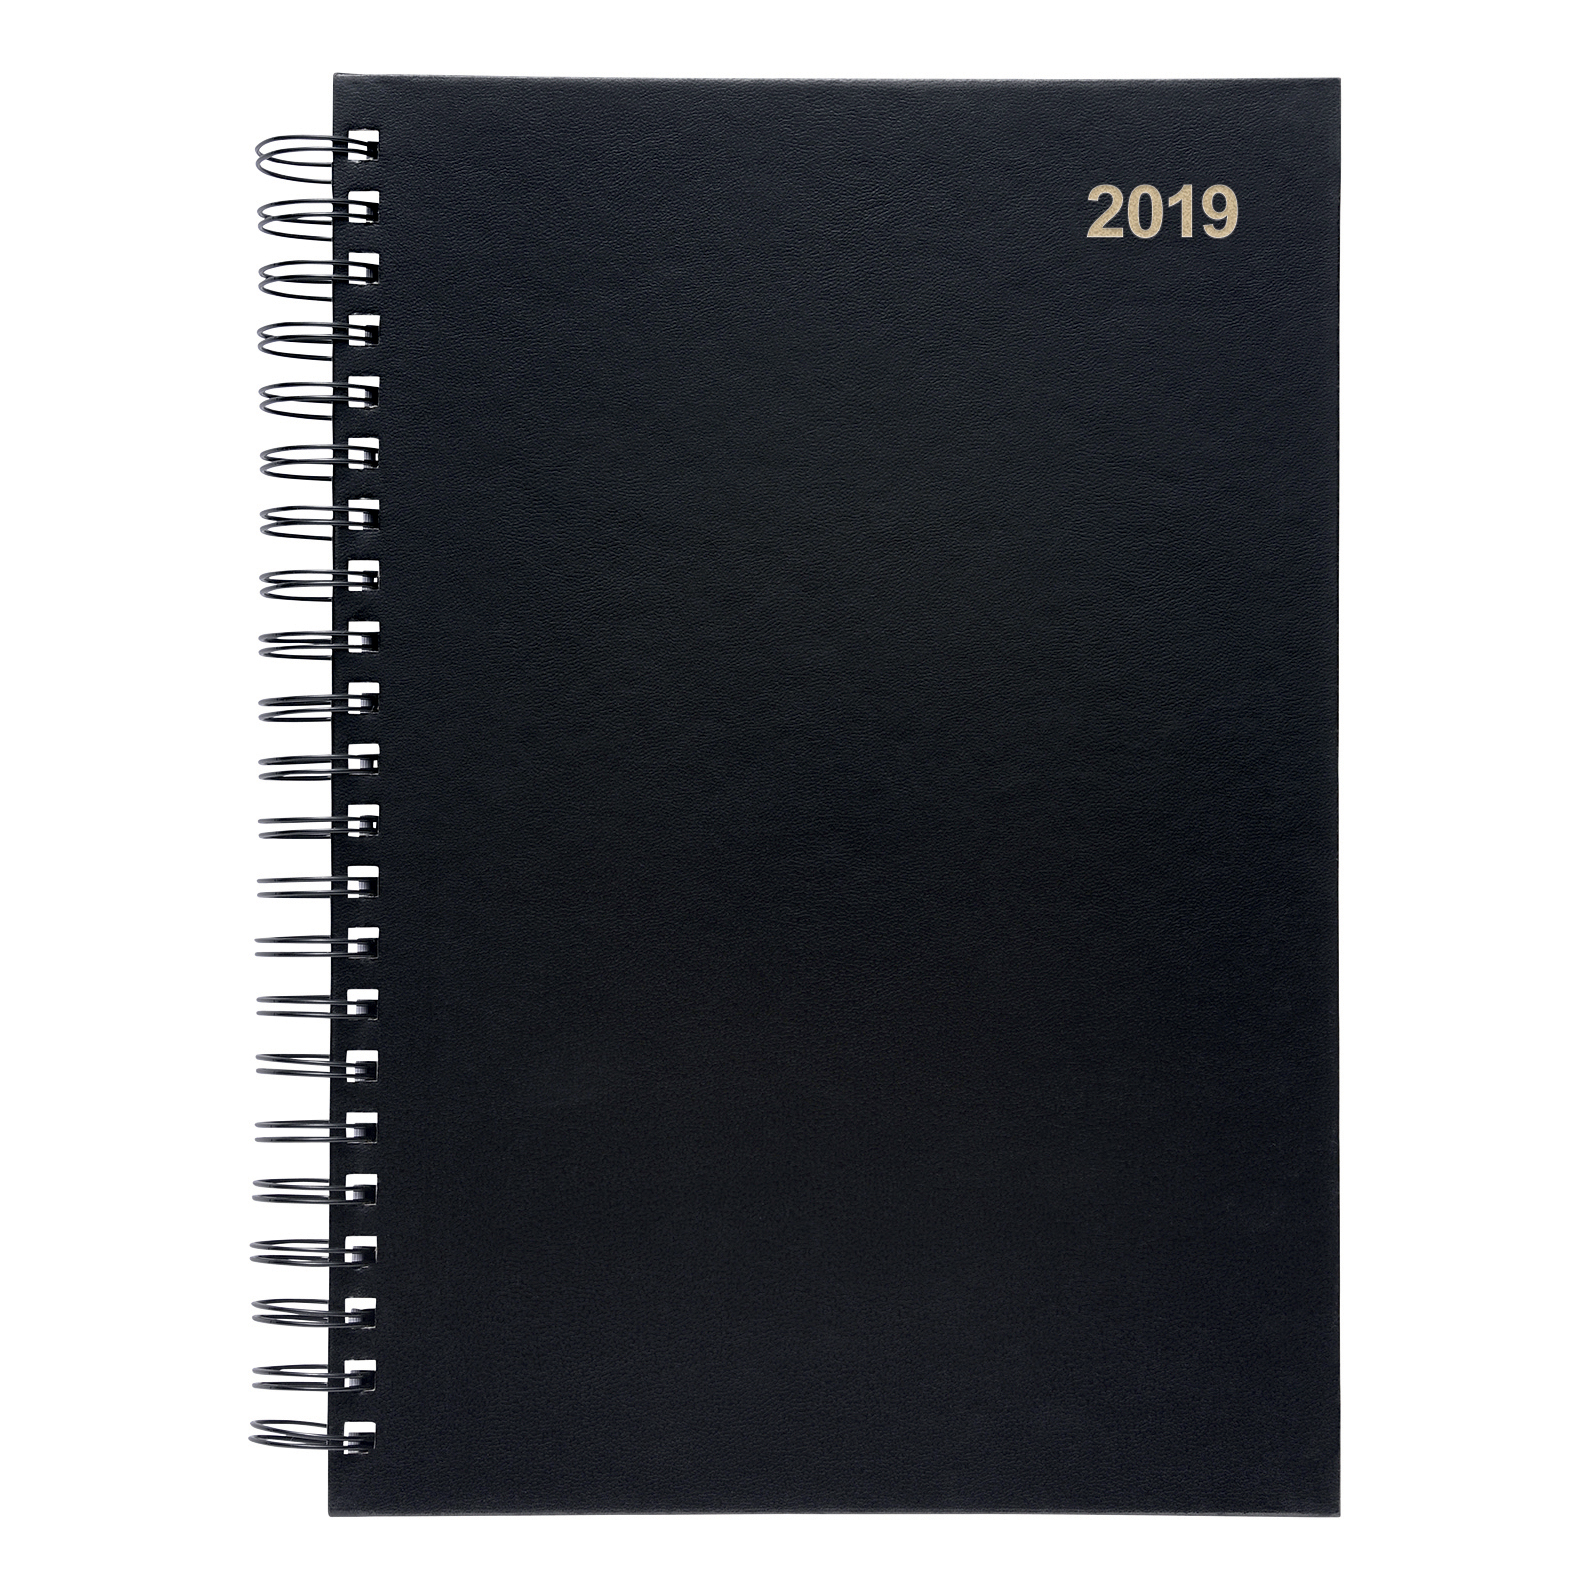 5 Star 2019 Wiro A4 Day/Page Diary Black